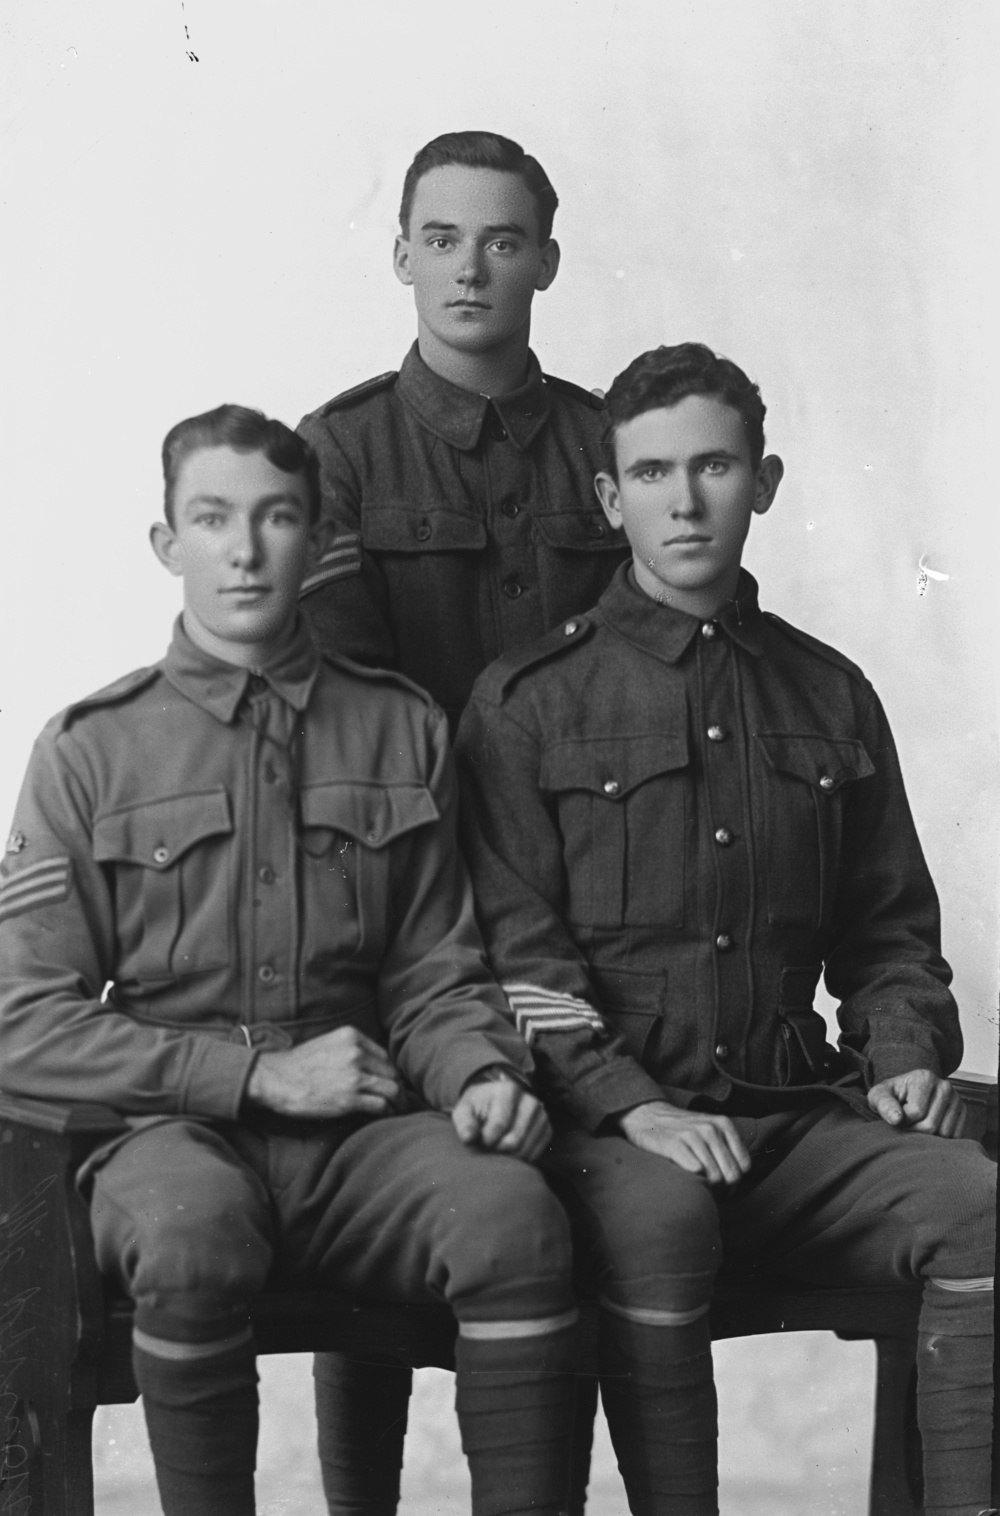 Photographed at the Dease Studio, 117 Barrack Street Perth WA Image courtesy of the State Library of Western Australia: 108578PD